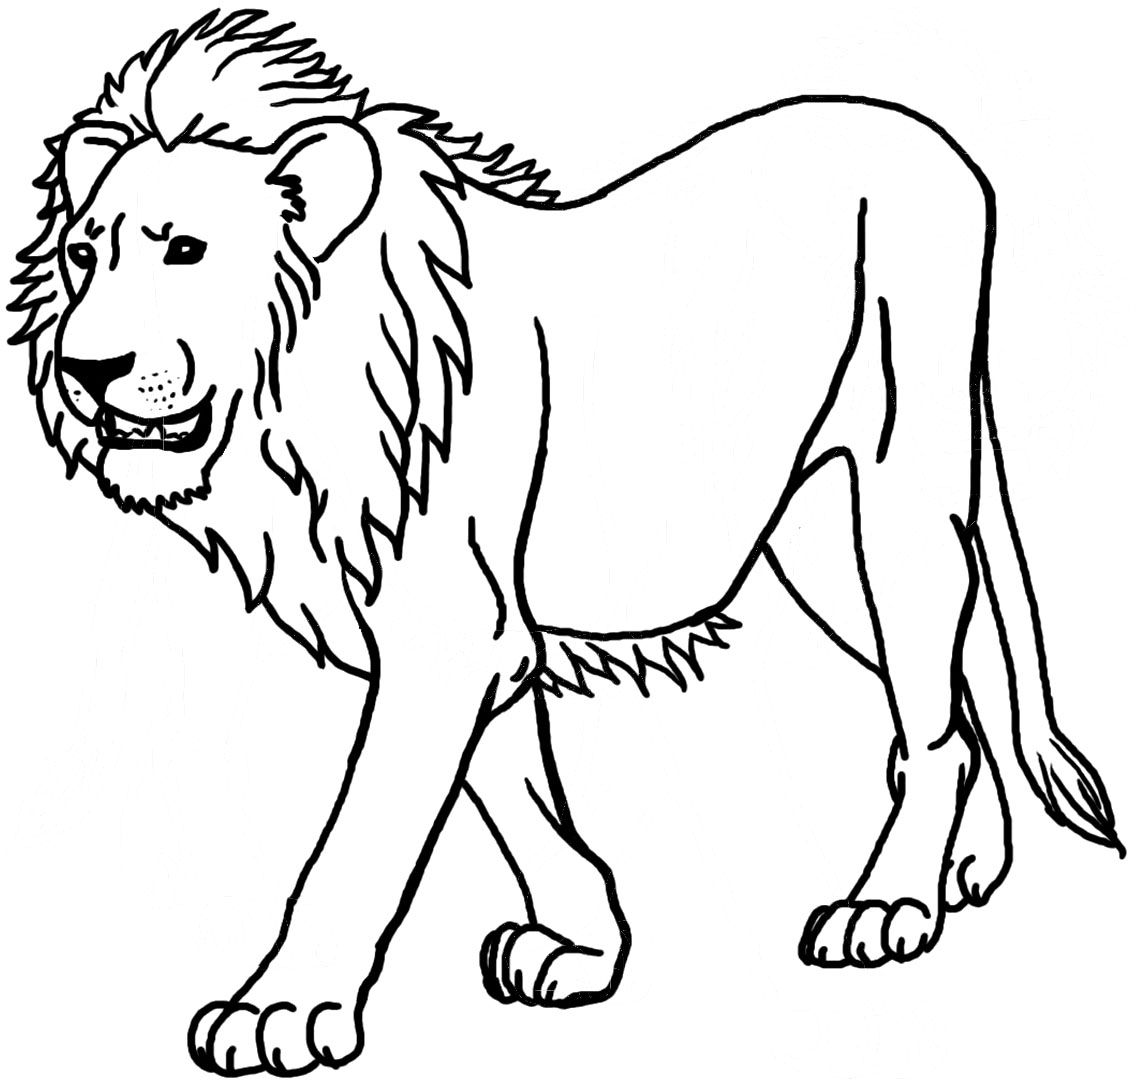 108 dessins de coloriage lion imprimer sur page 1. Black Bedroom Furniture Sets. Home Design Ideas